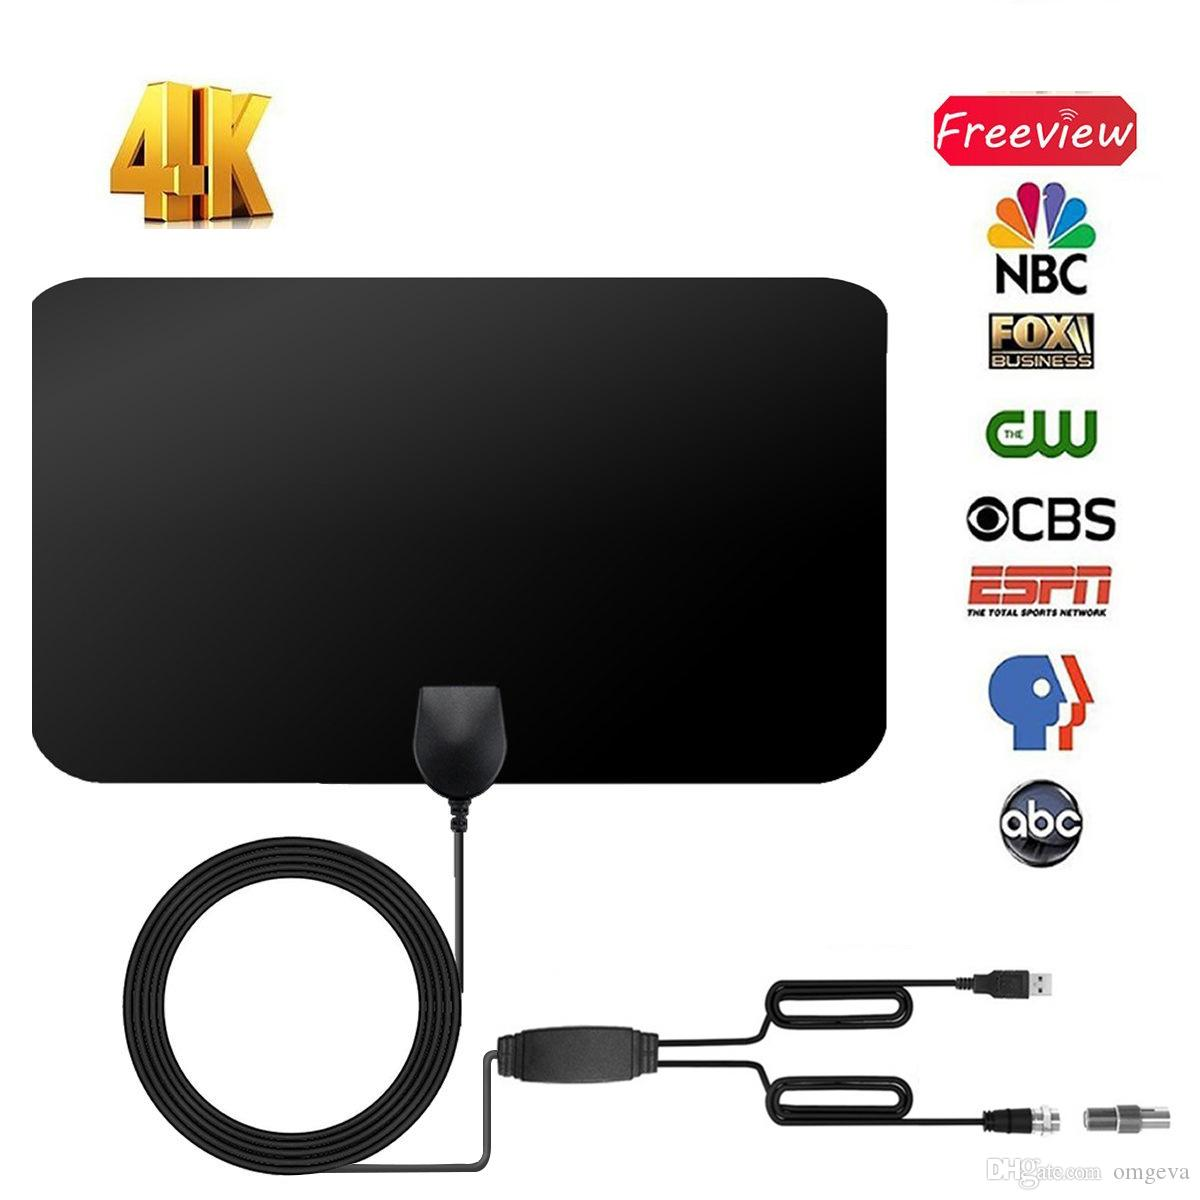 Indoor Digital Antenna HDTV with Signal Amplifier 25dBi Aerial Flat Design Mini Hot Selling TV Receiver New style Skywire 4K Antenna